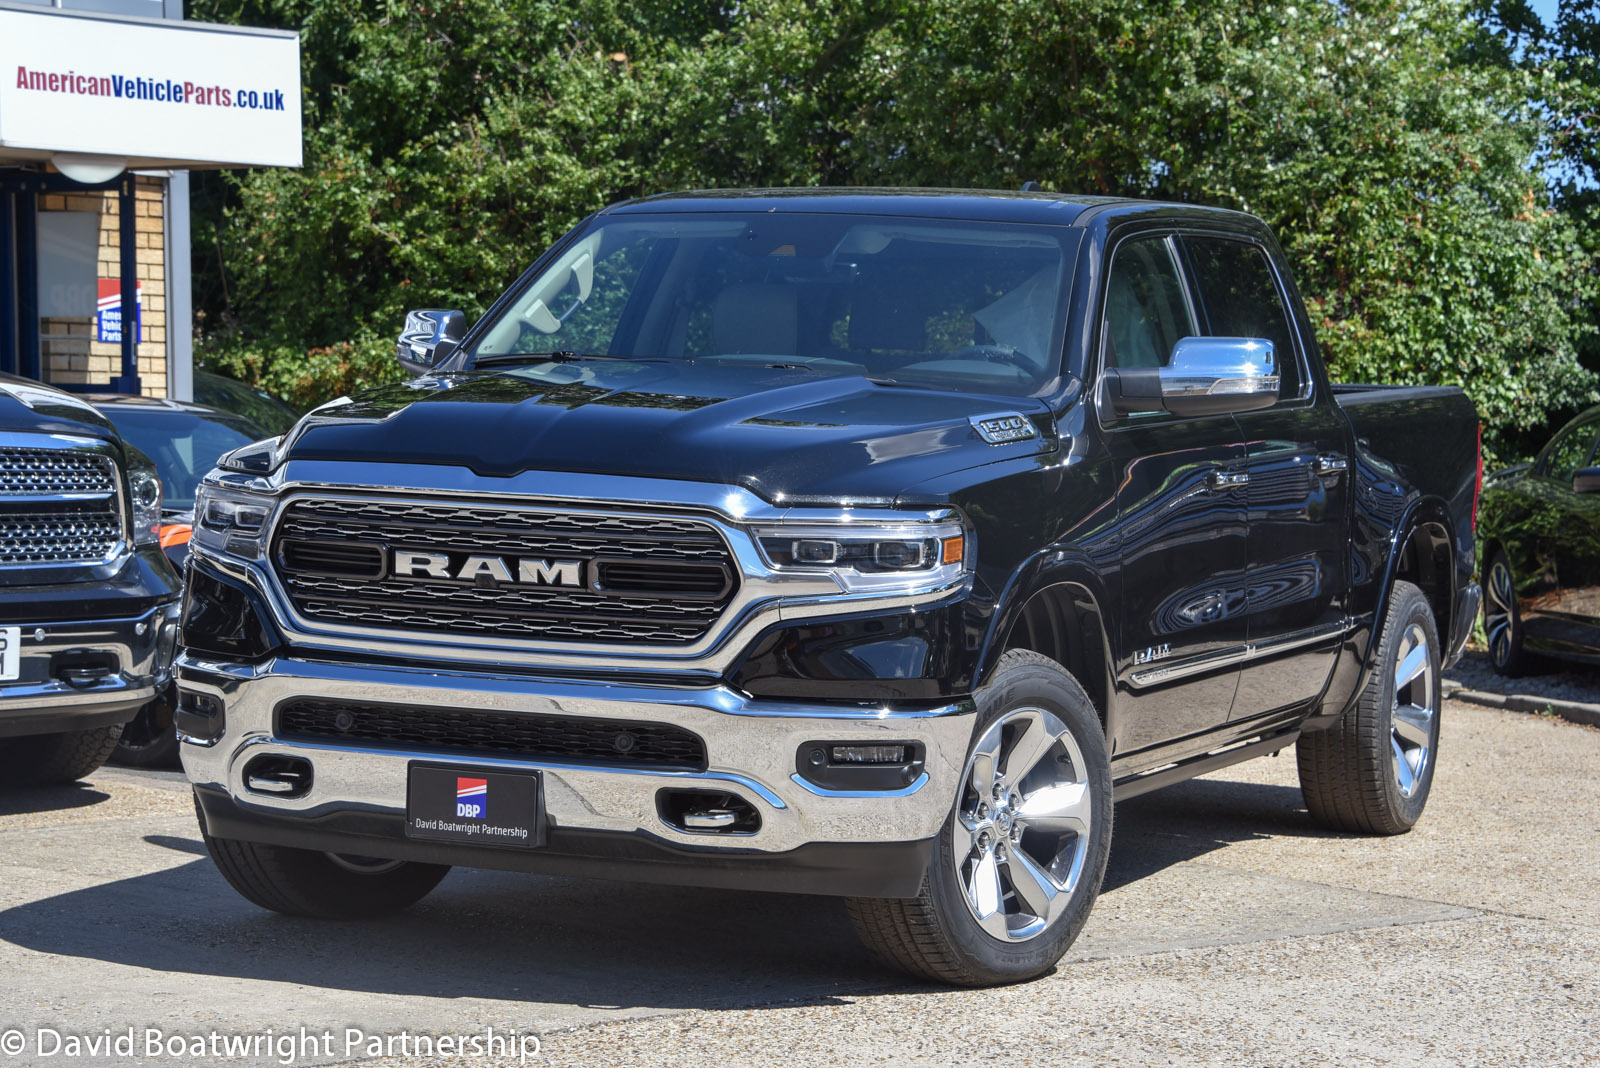 2019 RAM LIMITED FOR SALE IN THE UK